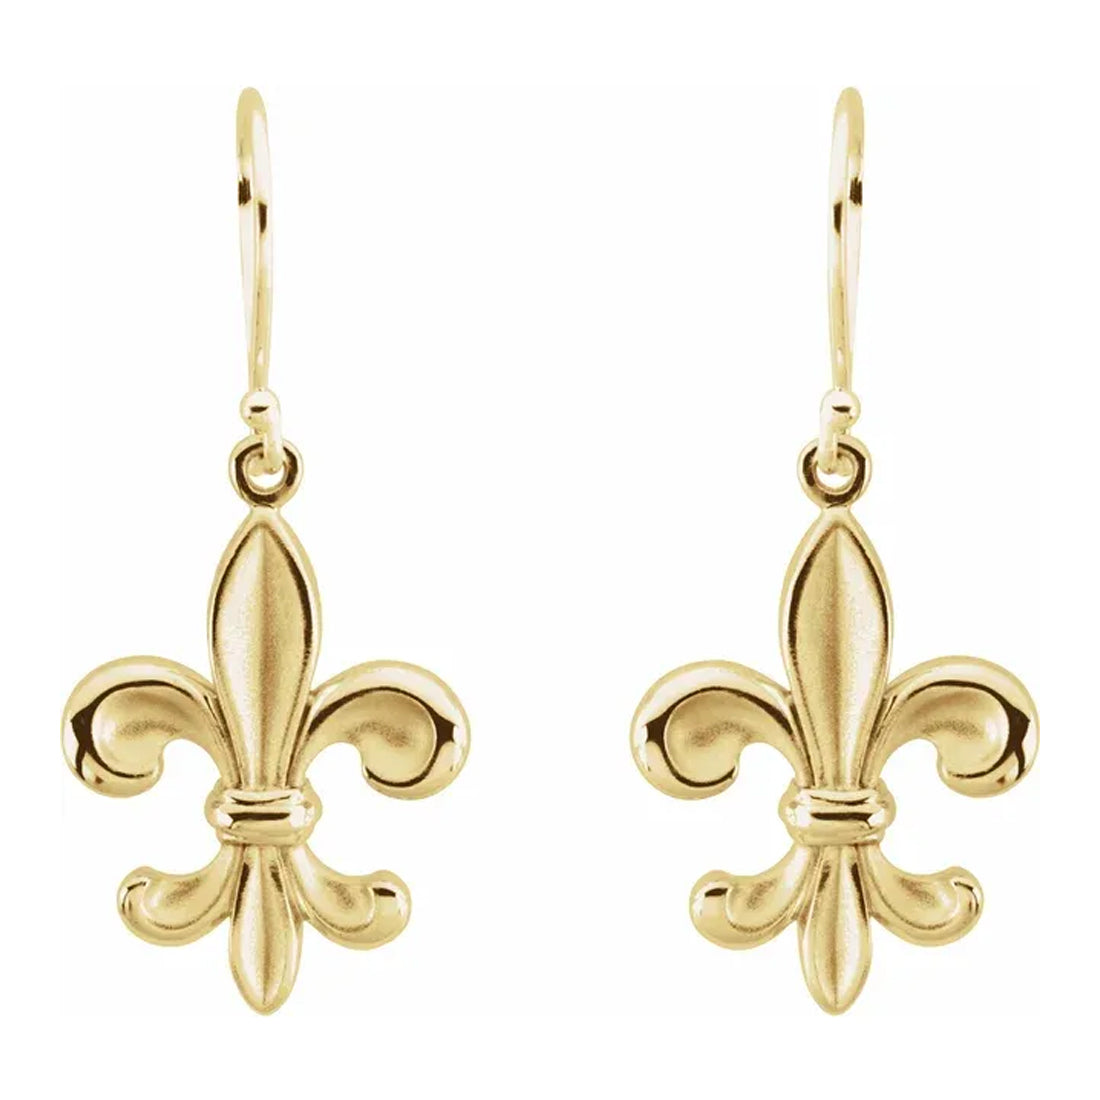 Gold Dangle Earring - Fleur-de-lis Earring For Ladies